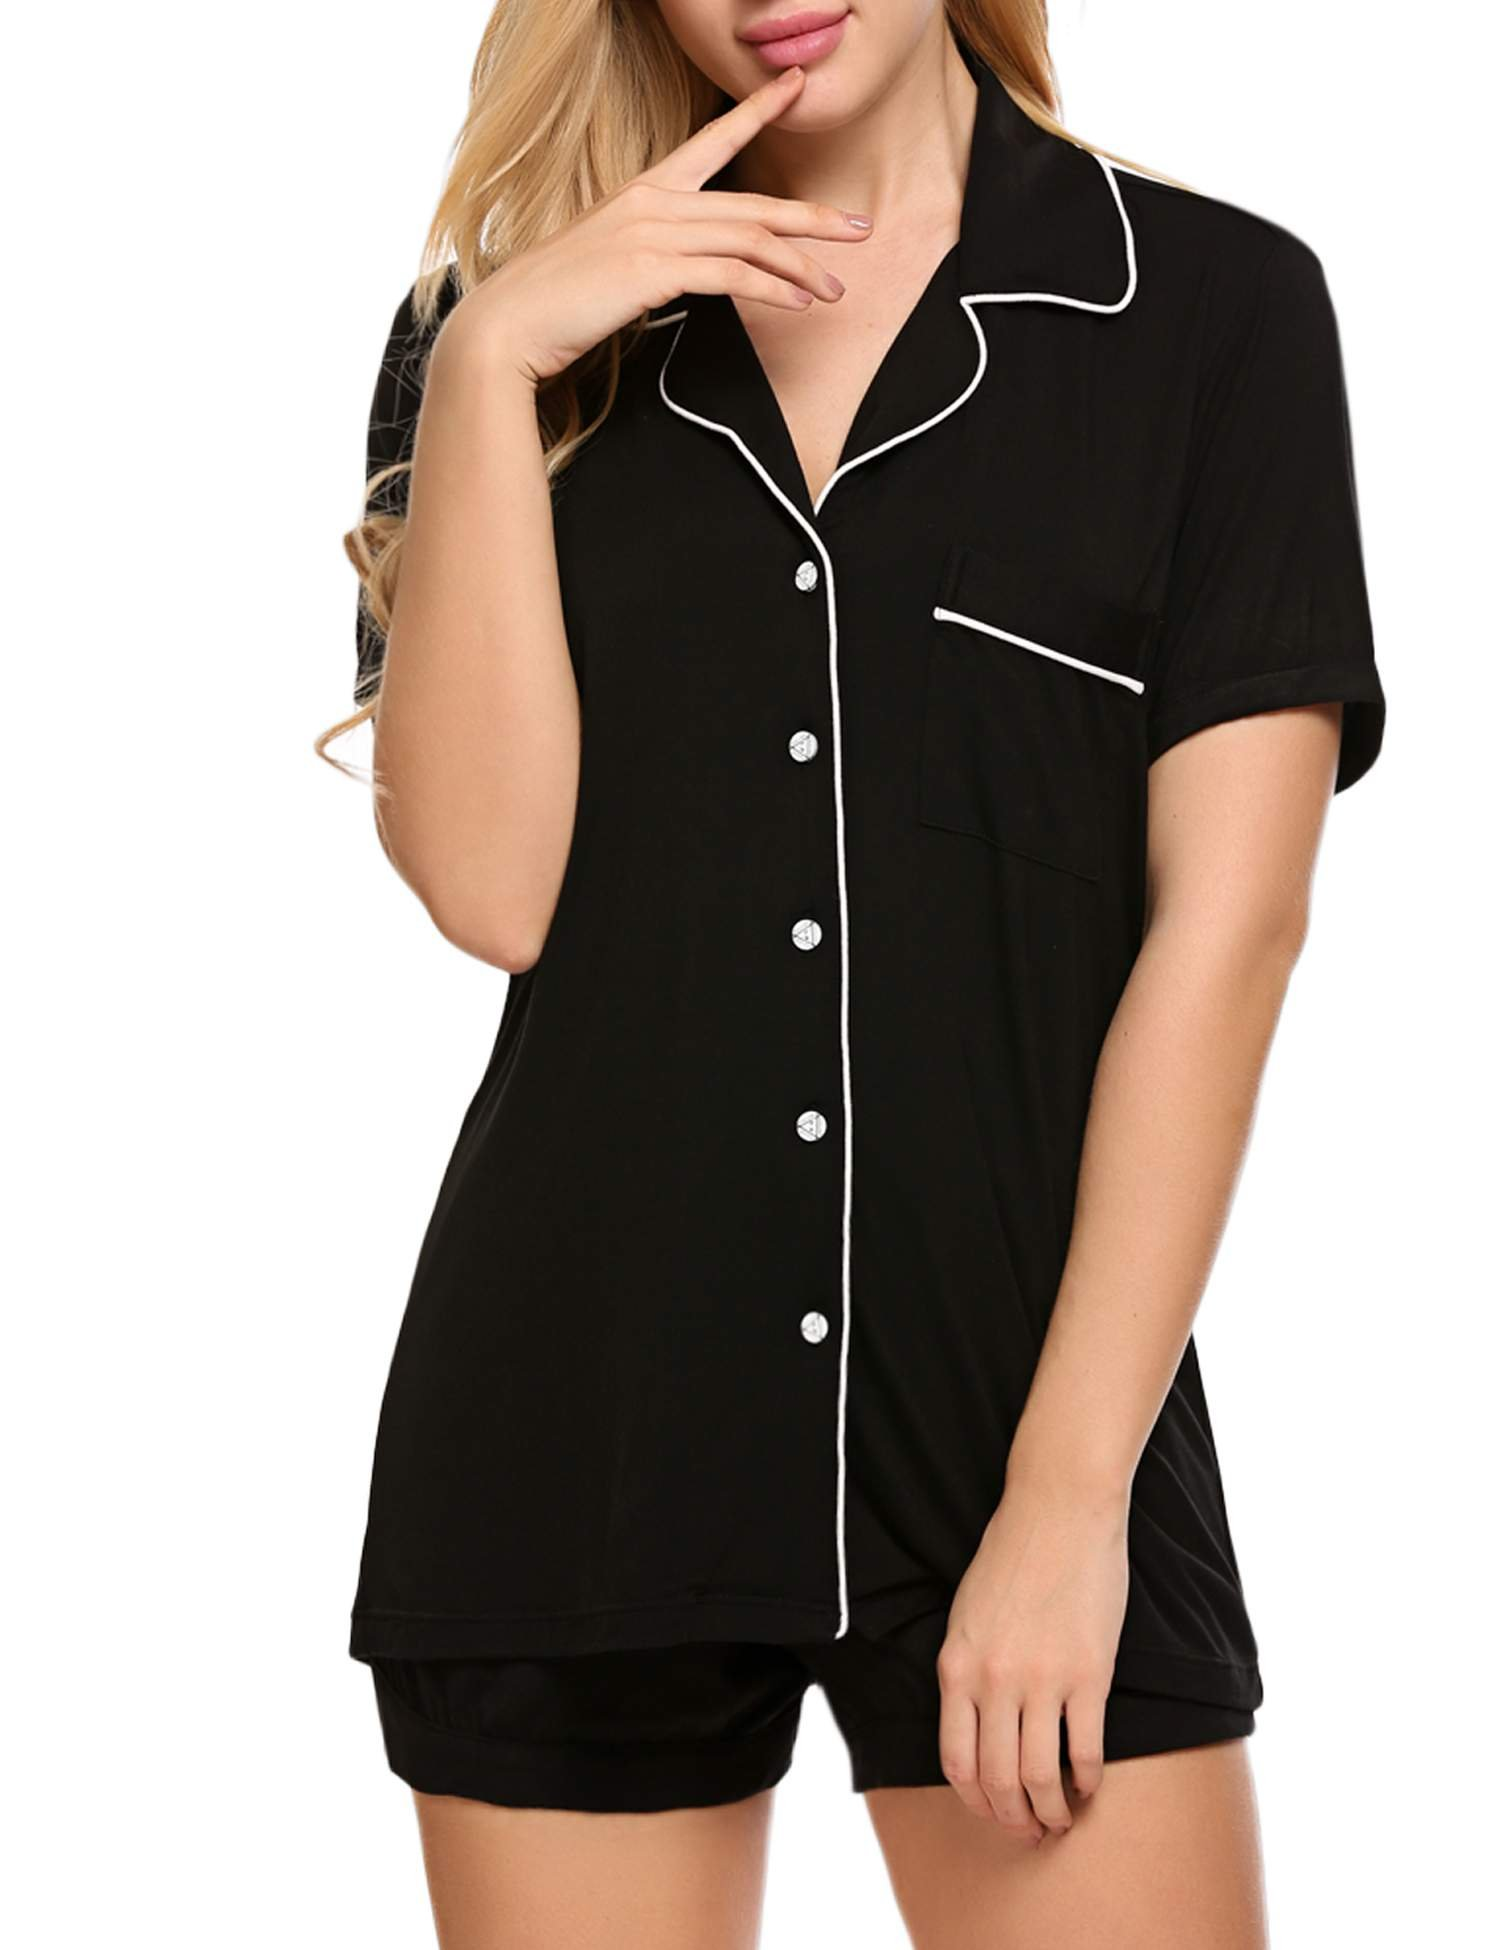 Ekouaer Slip Pajama Set Womens Short Sleepping Wear Set(Black, Medium) by Ekouaer (Image #4)